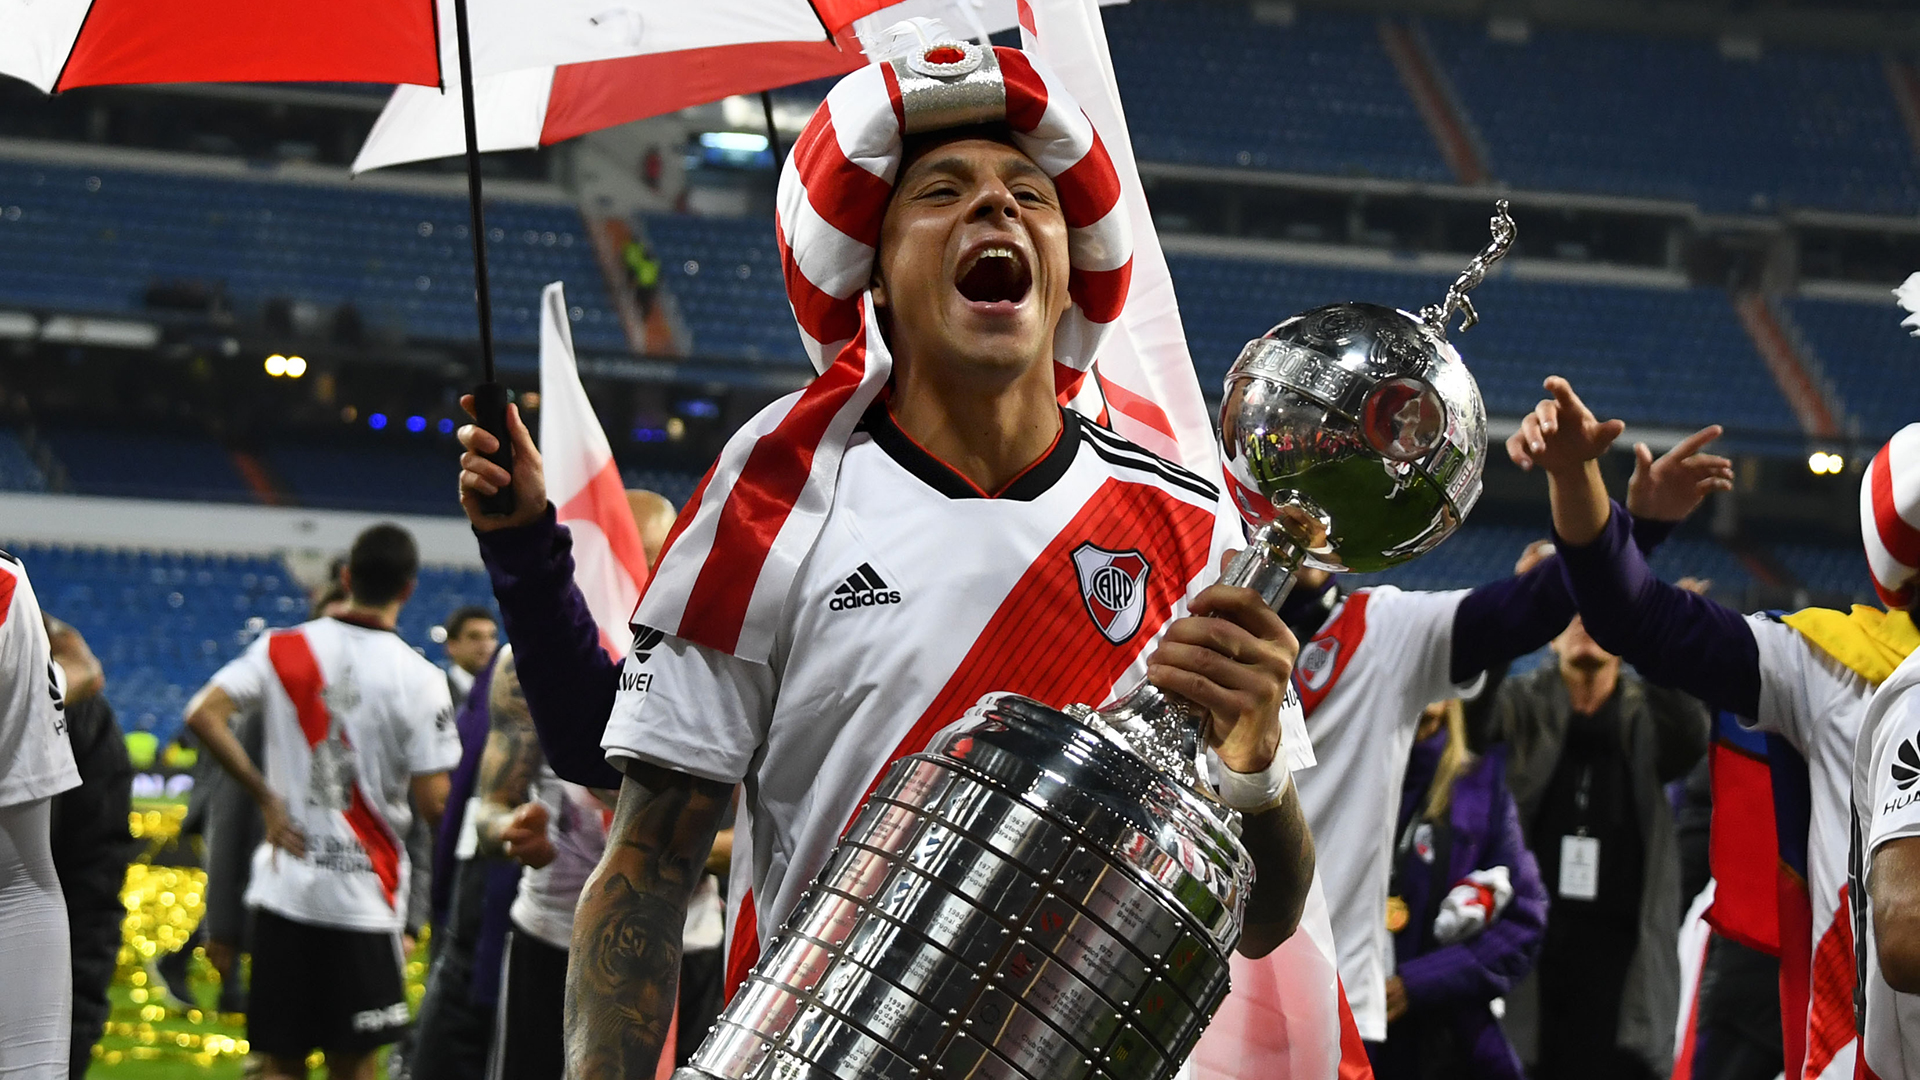 River Plate campeón 2018